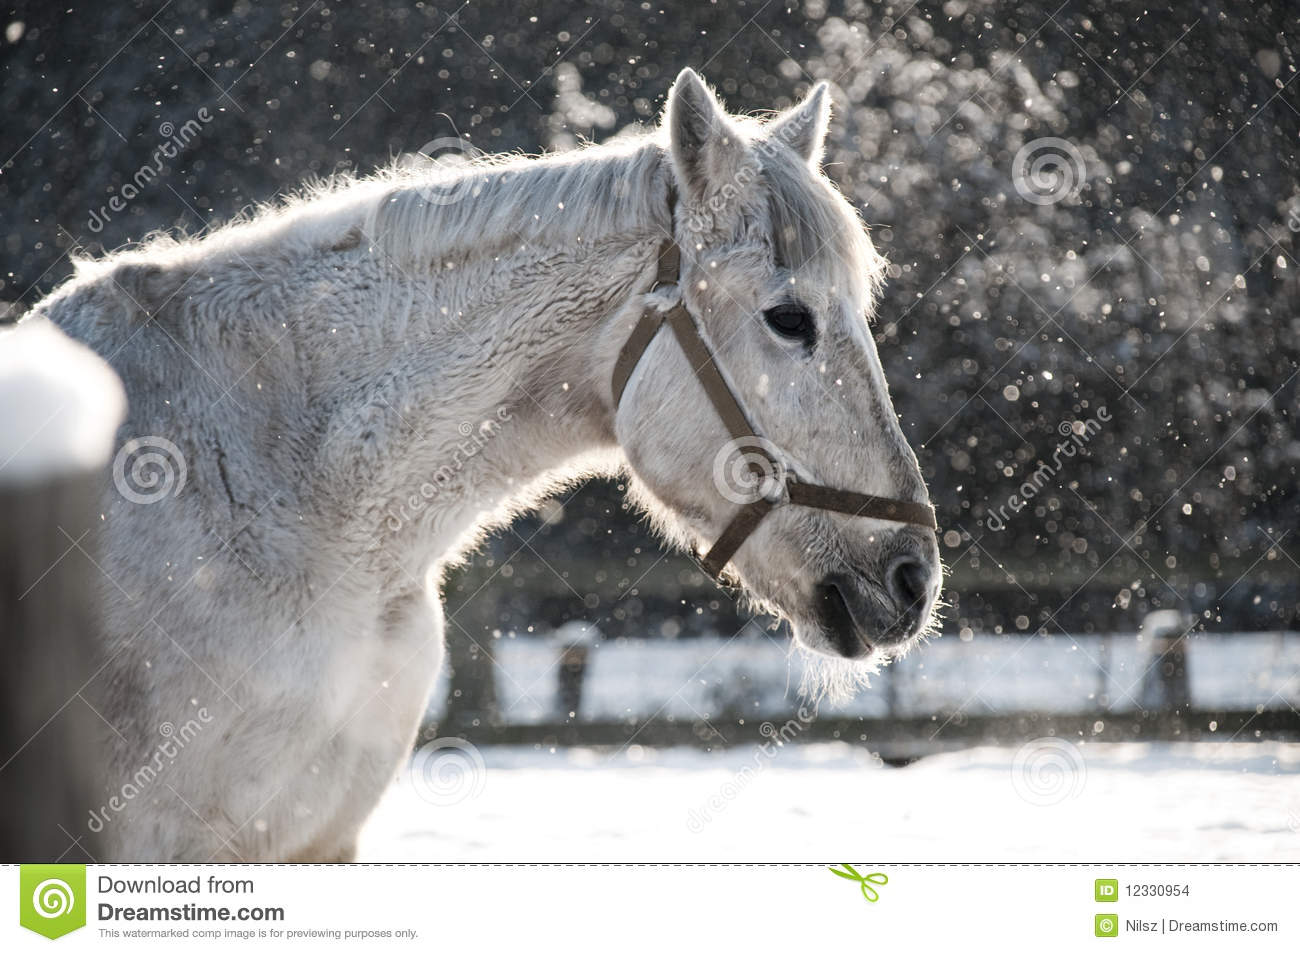 White Horse Standing In Snow Stock Photo - Image: 12330954